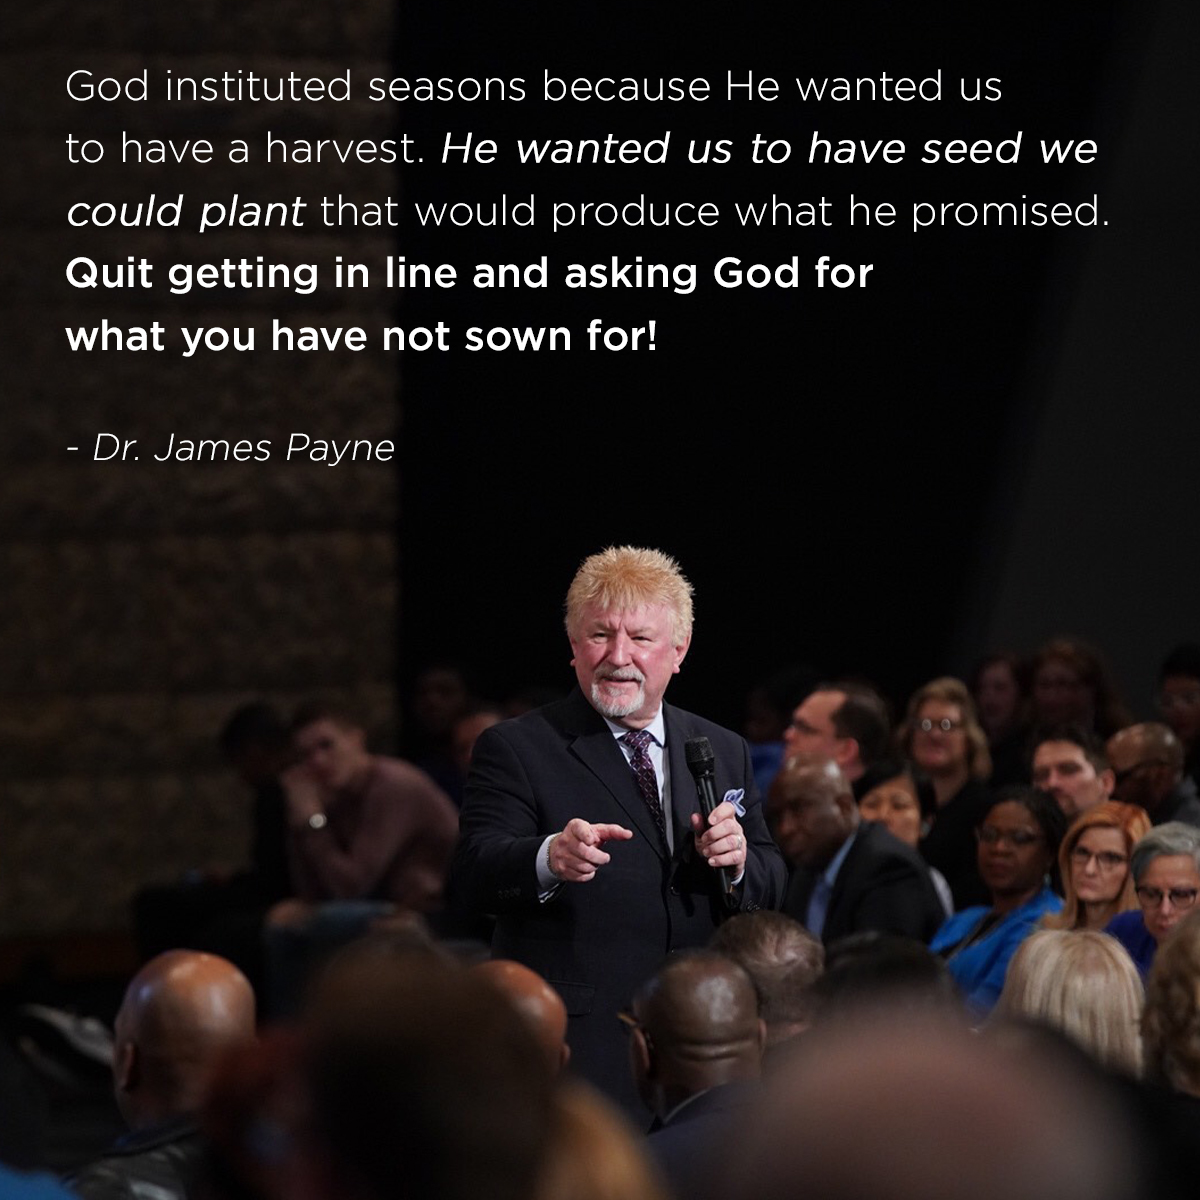 """God instituted seasons because He wanted us to have a harvest. He wanted us to have seed we could plant that would produce what he promised. Quit getting in line and asking God for what you have not sown for!"" – Dr. James Payne"